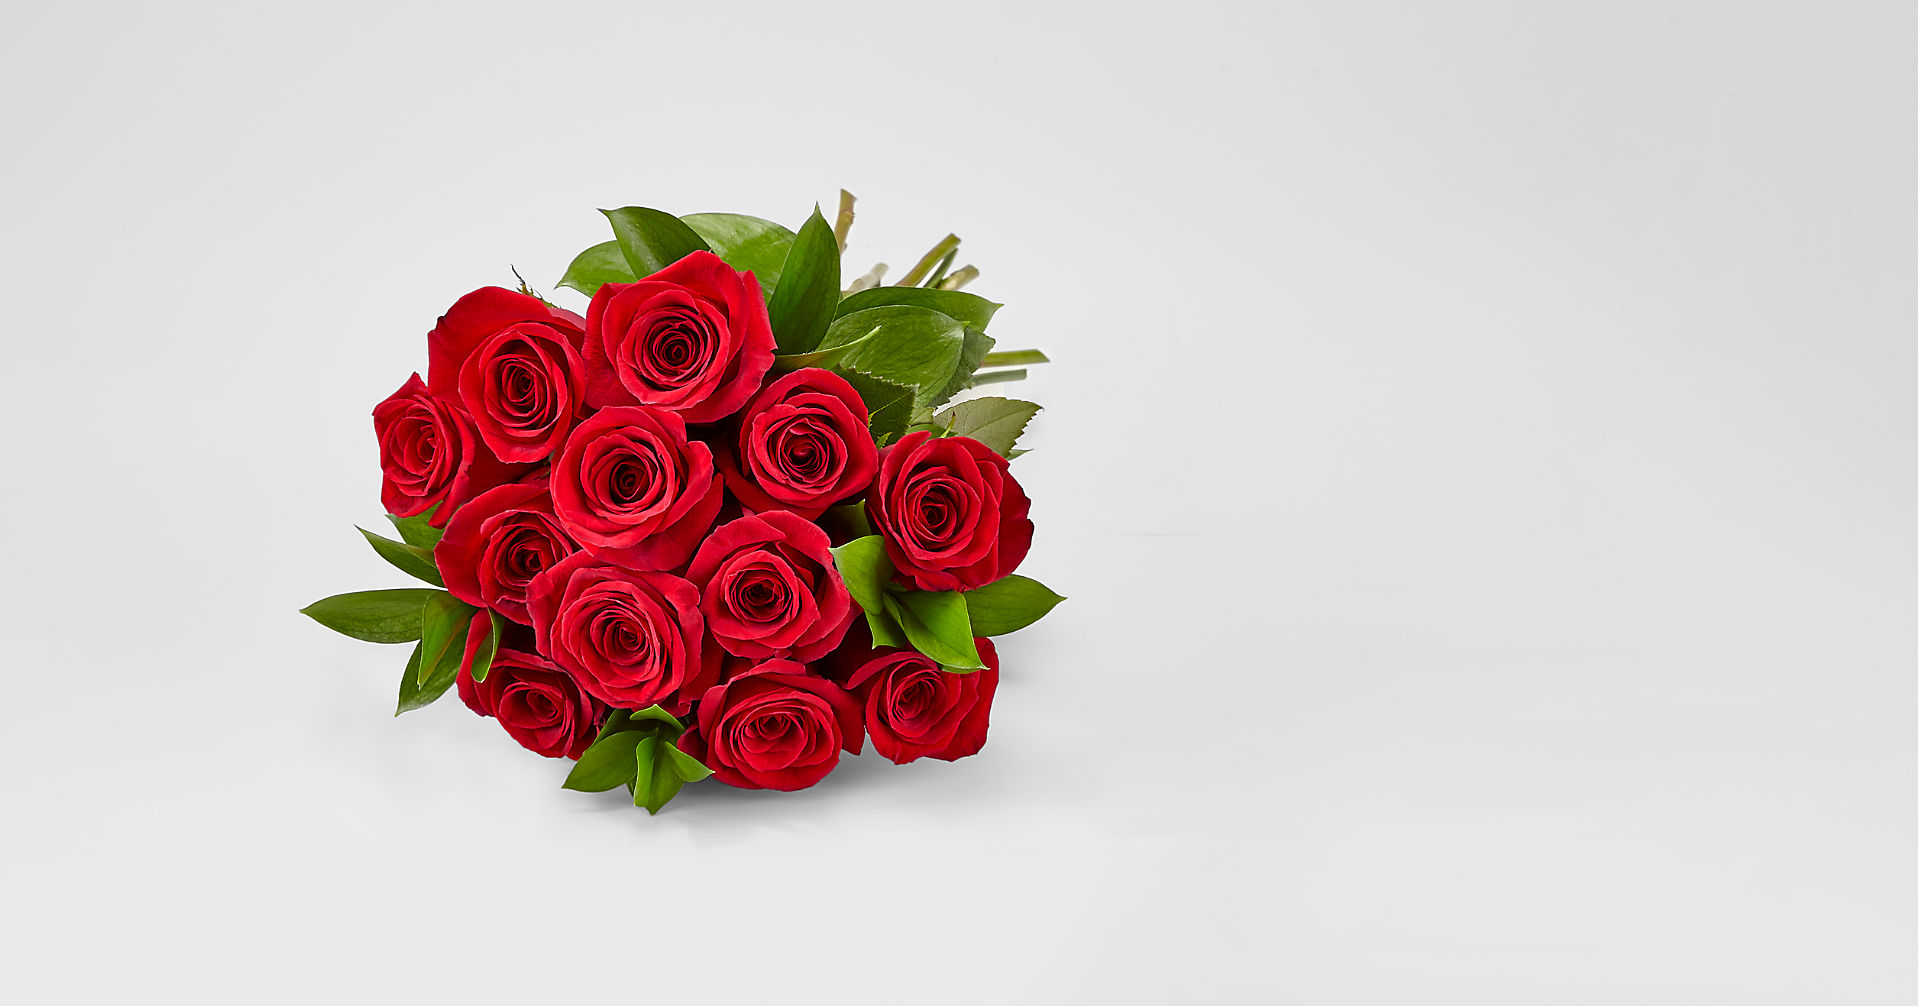 Red 1 Dozen Roses - Image 1 Of 3